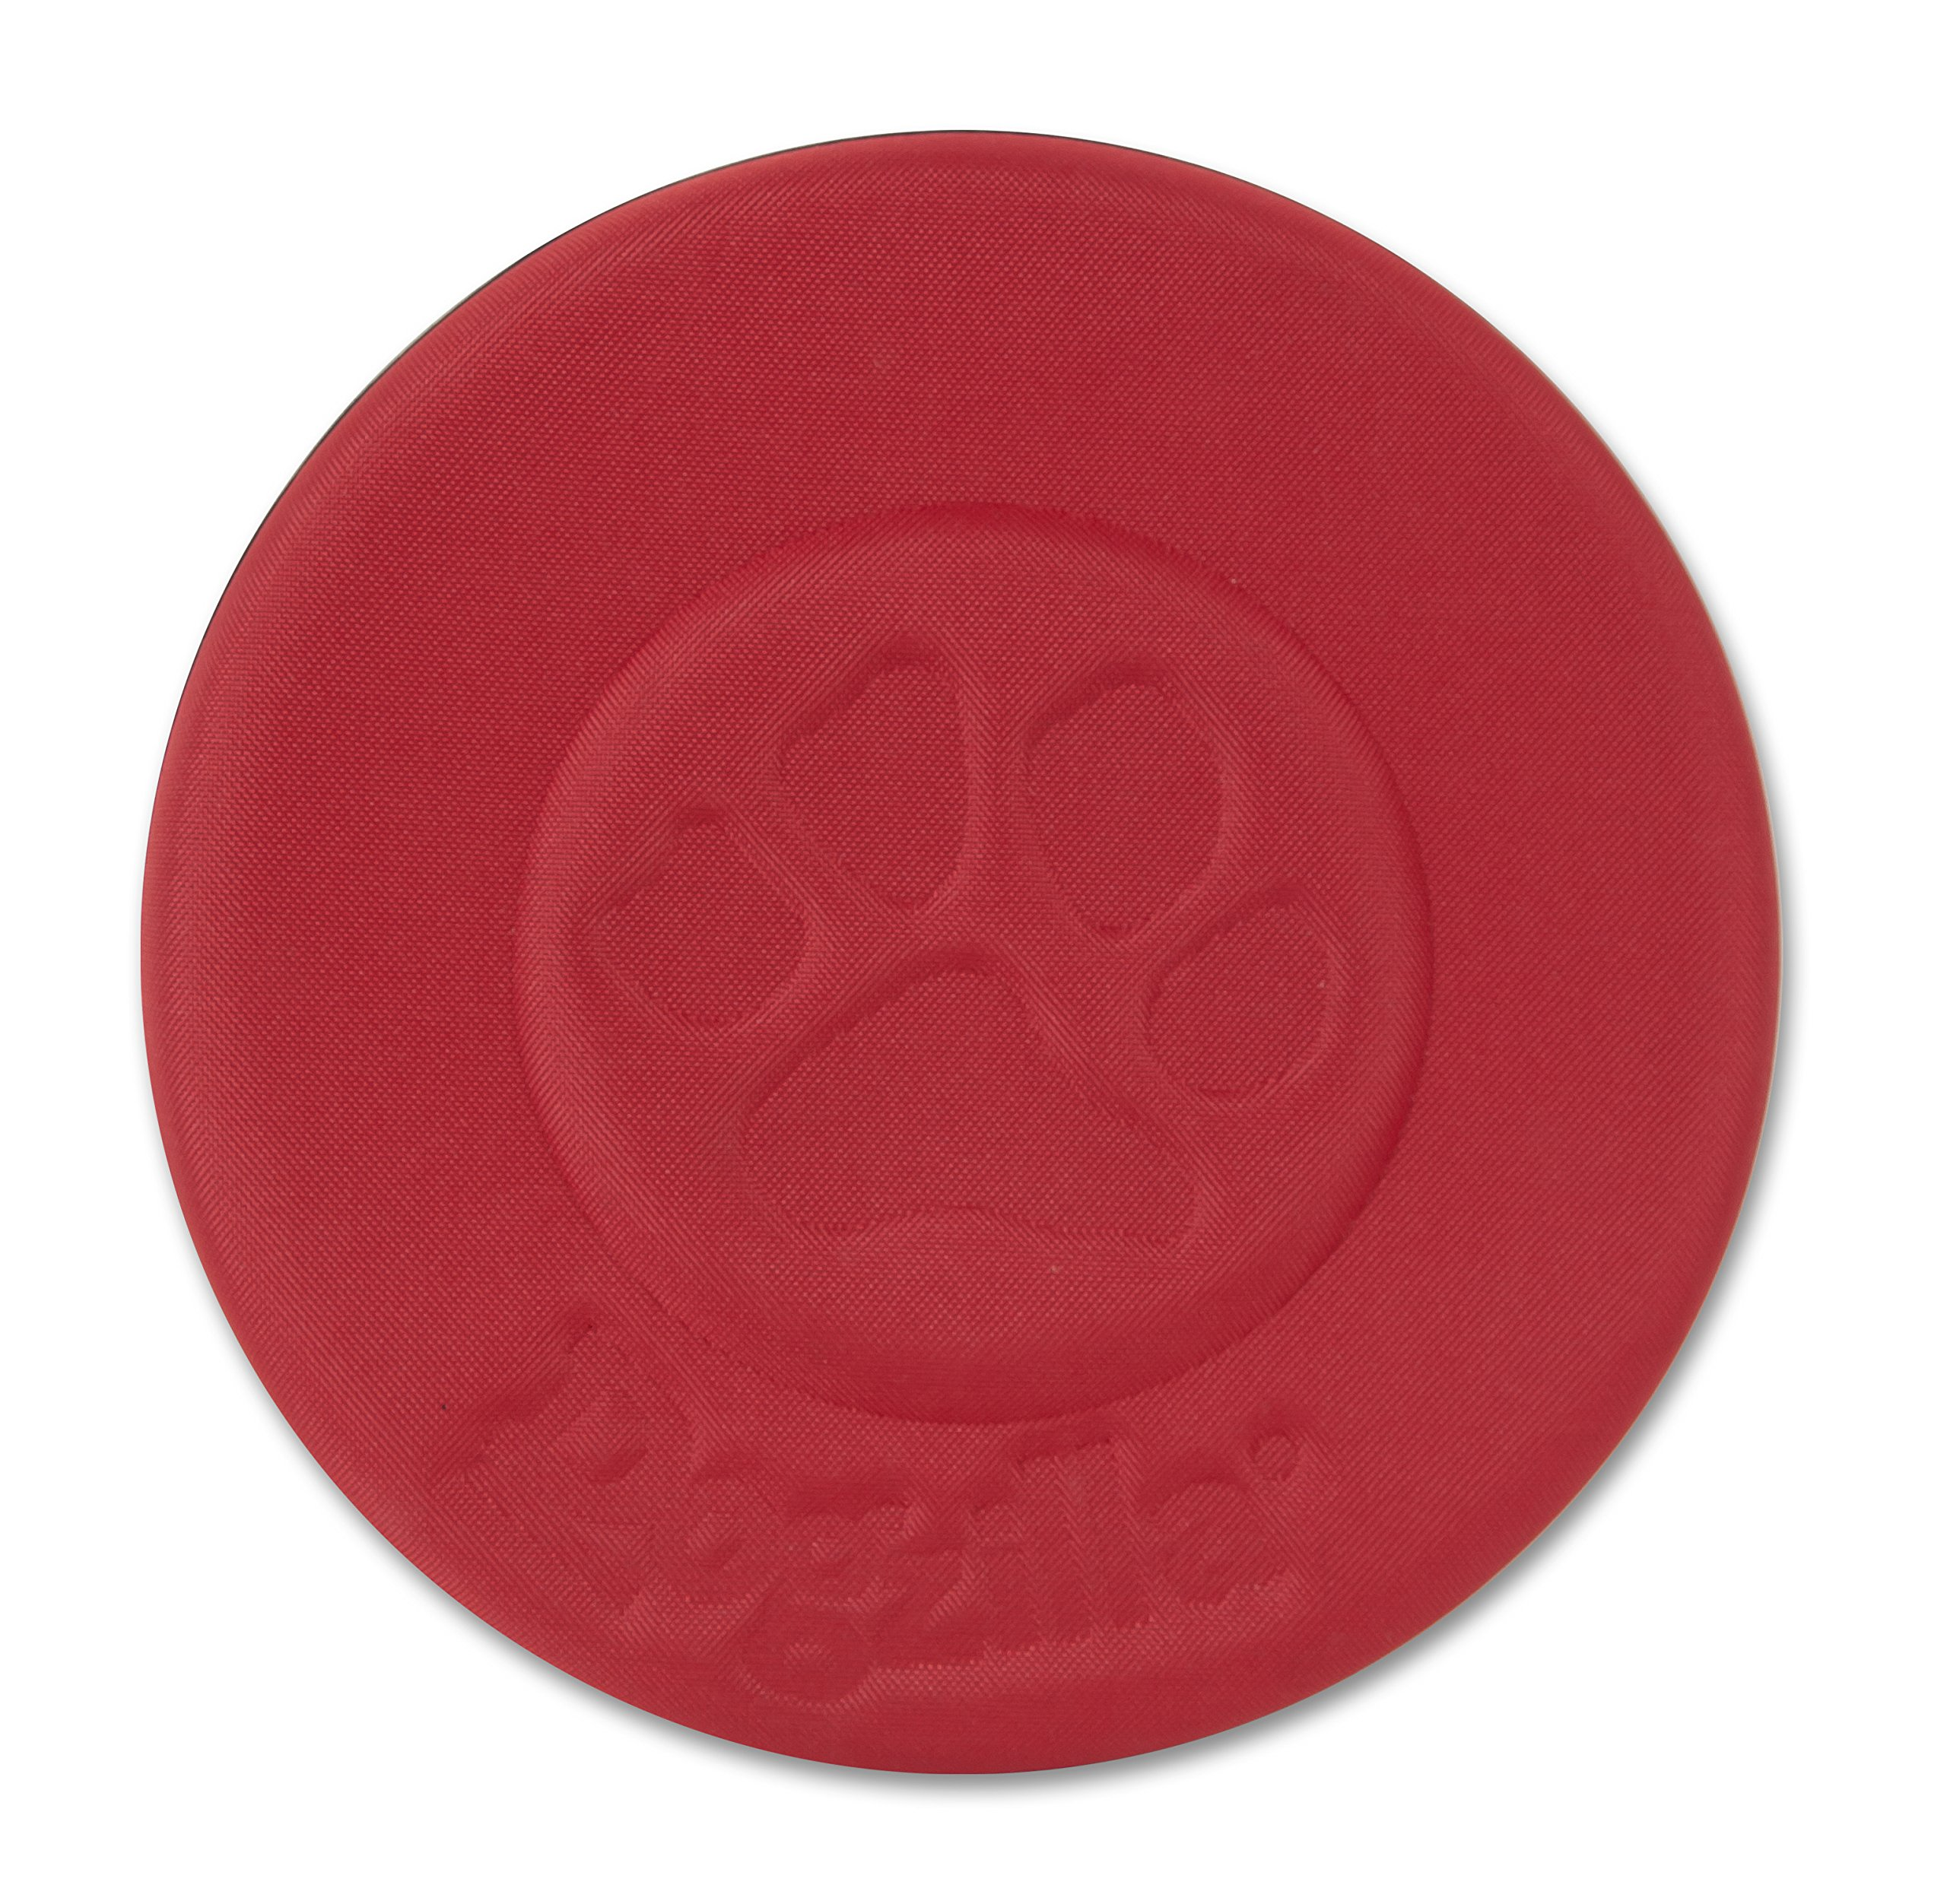 Petmate 30889 Dogzilla Flying Disc Pet Toy, 10-Inch, Red